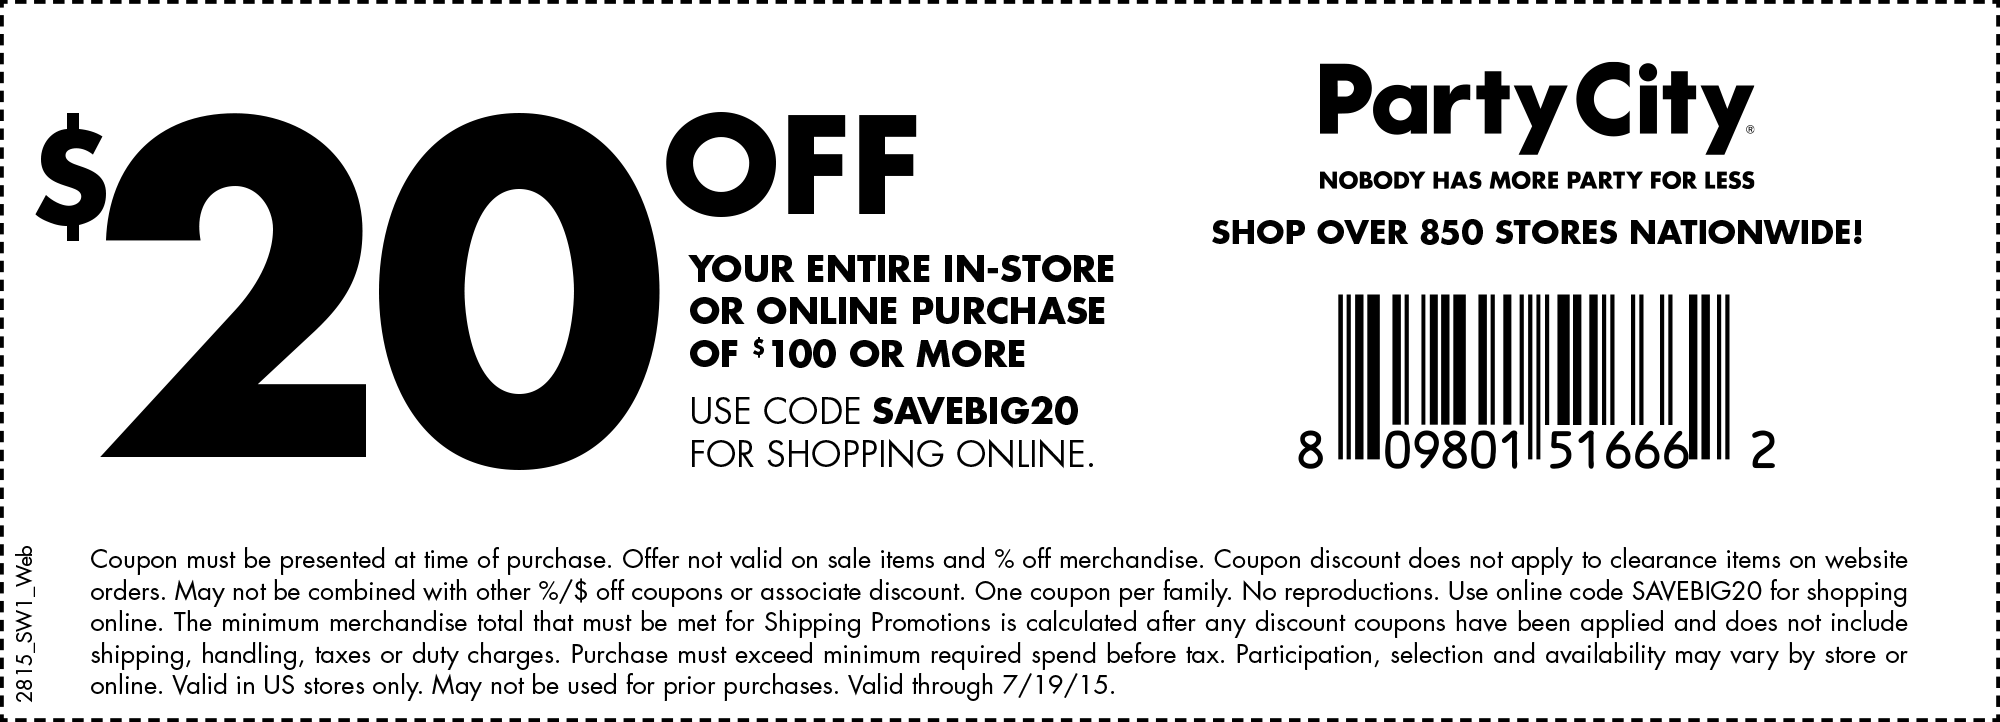 Party City Coupon December 2016 $20 off $100 at Party City, or online via promo code SAVEBIG20